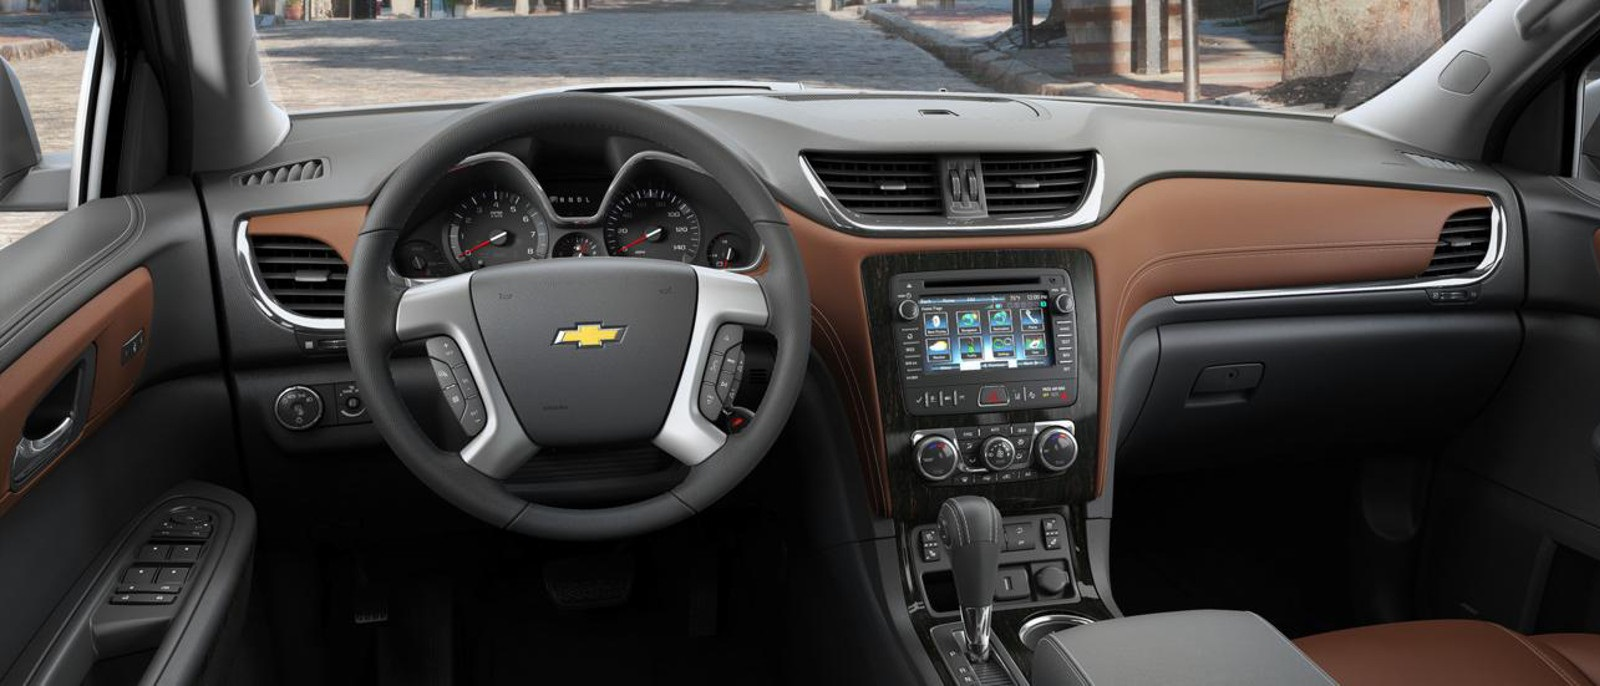 2016 Chevy Traverse Interior